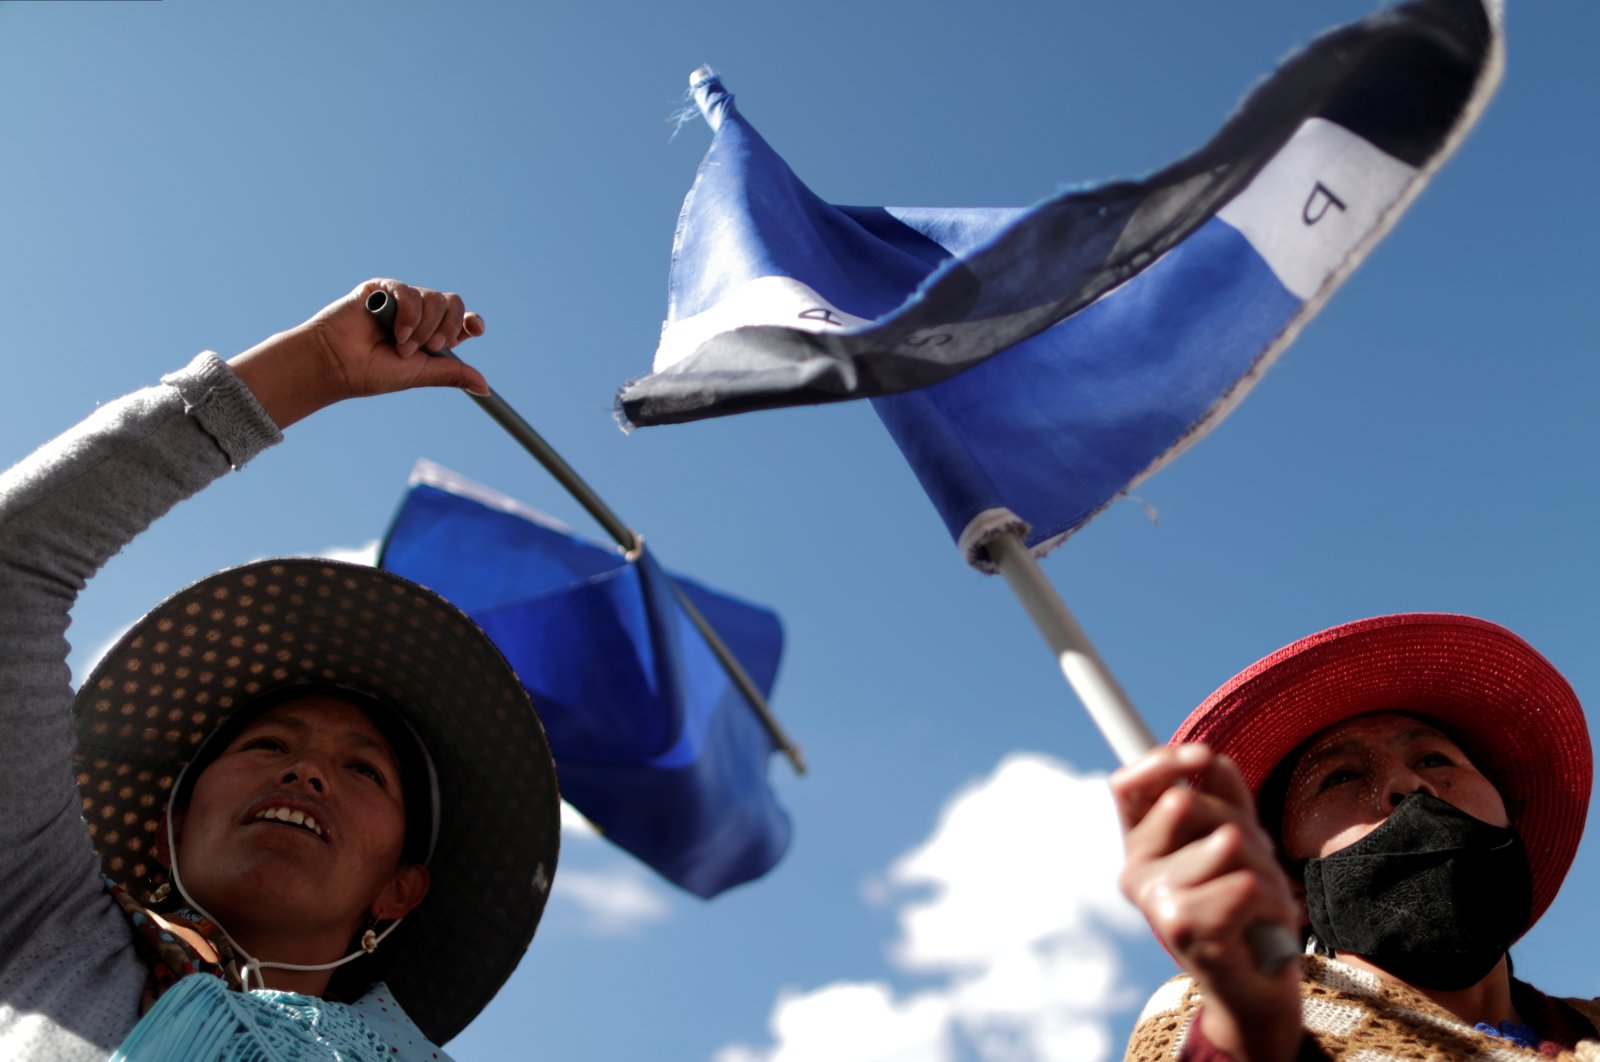 Supporters of the Movement to Socialism party (MAS) attend a rally a day after the nationwide election in El Alto, Bolivia, Oct. 19, 2020. (Reuters Photo)